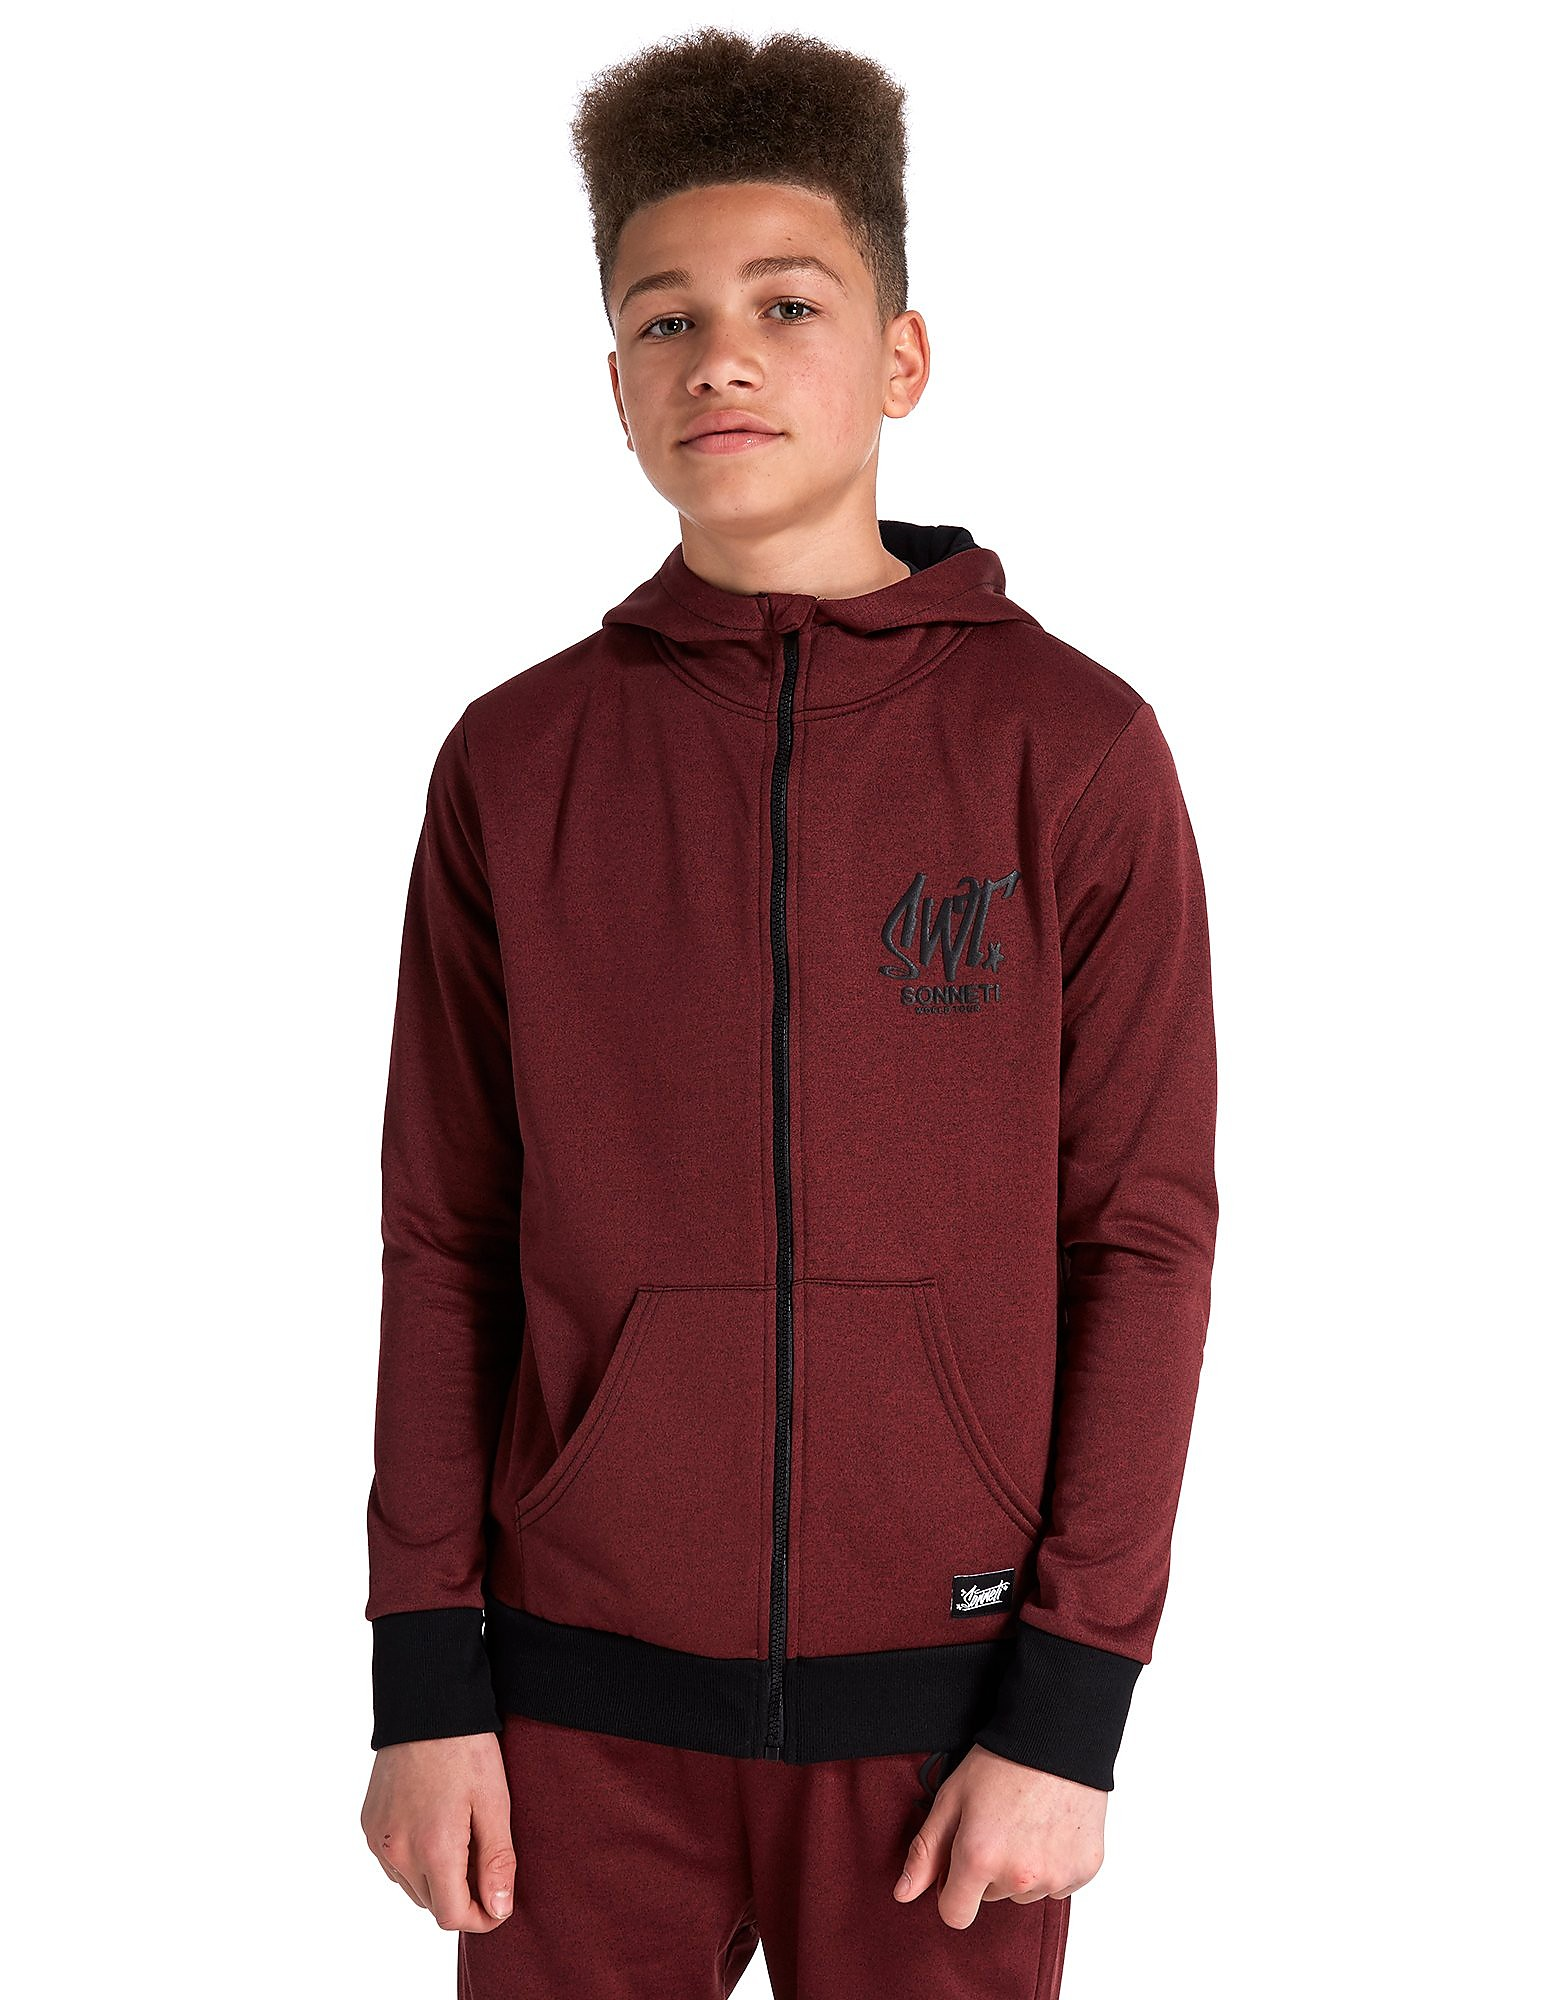 Sonneti Compounder Full Zip Hoody Junior